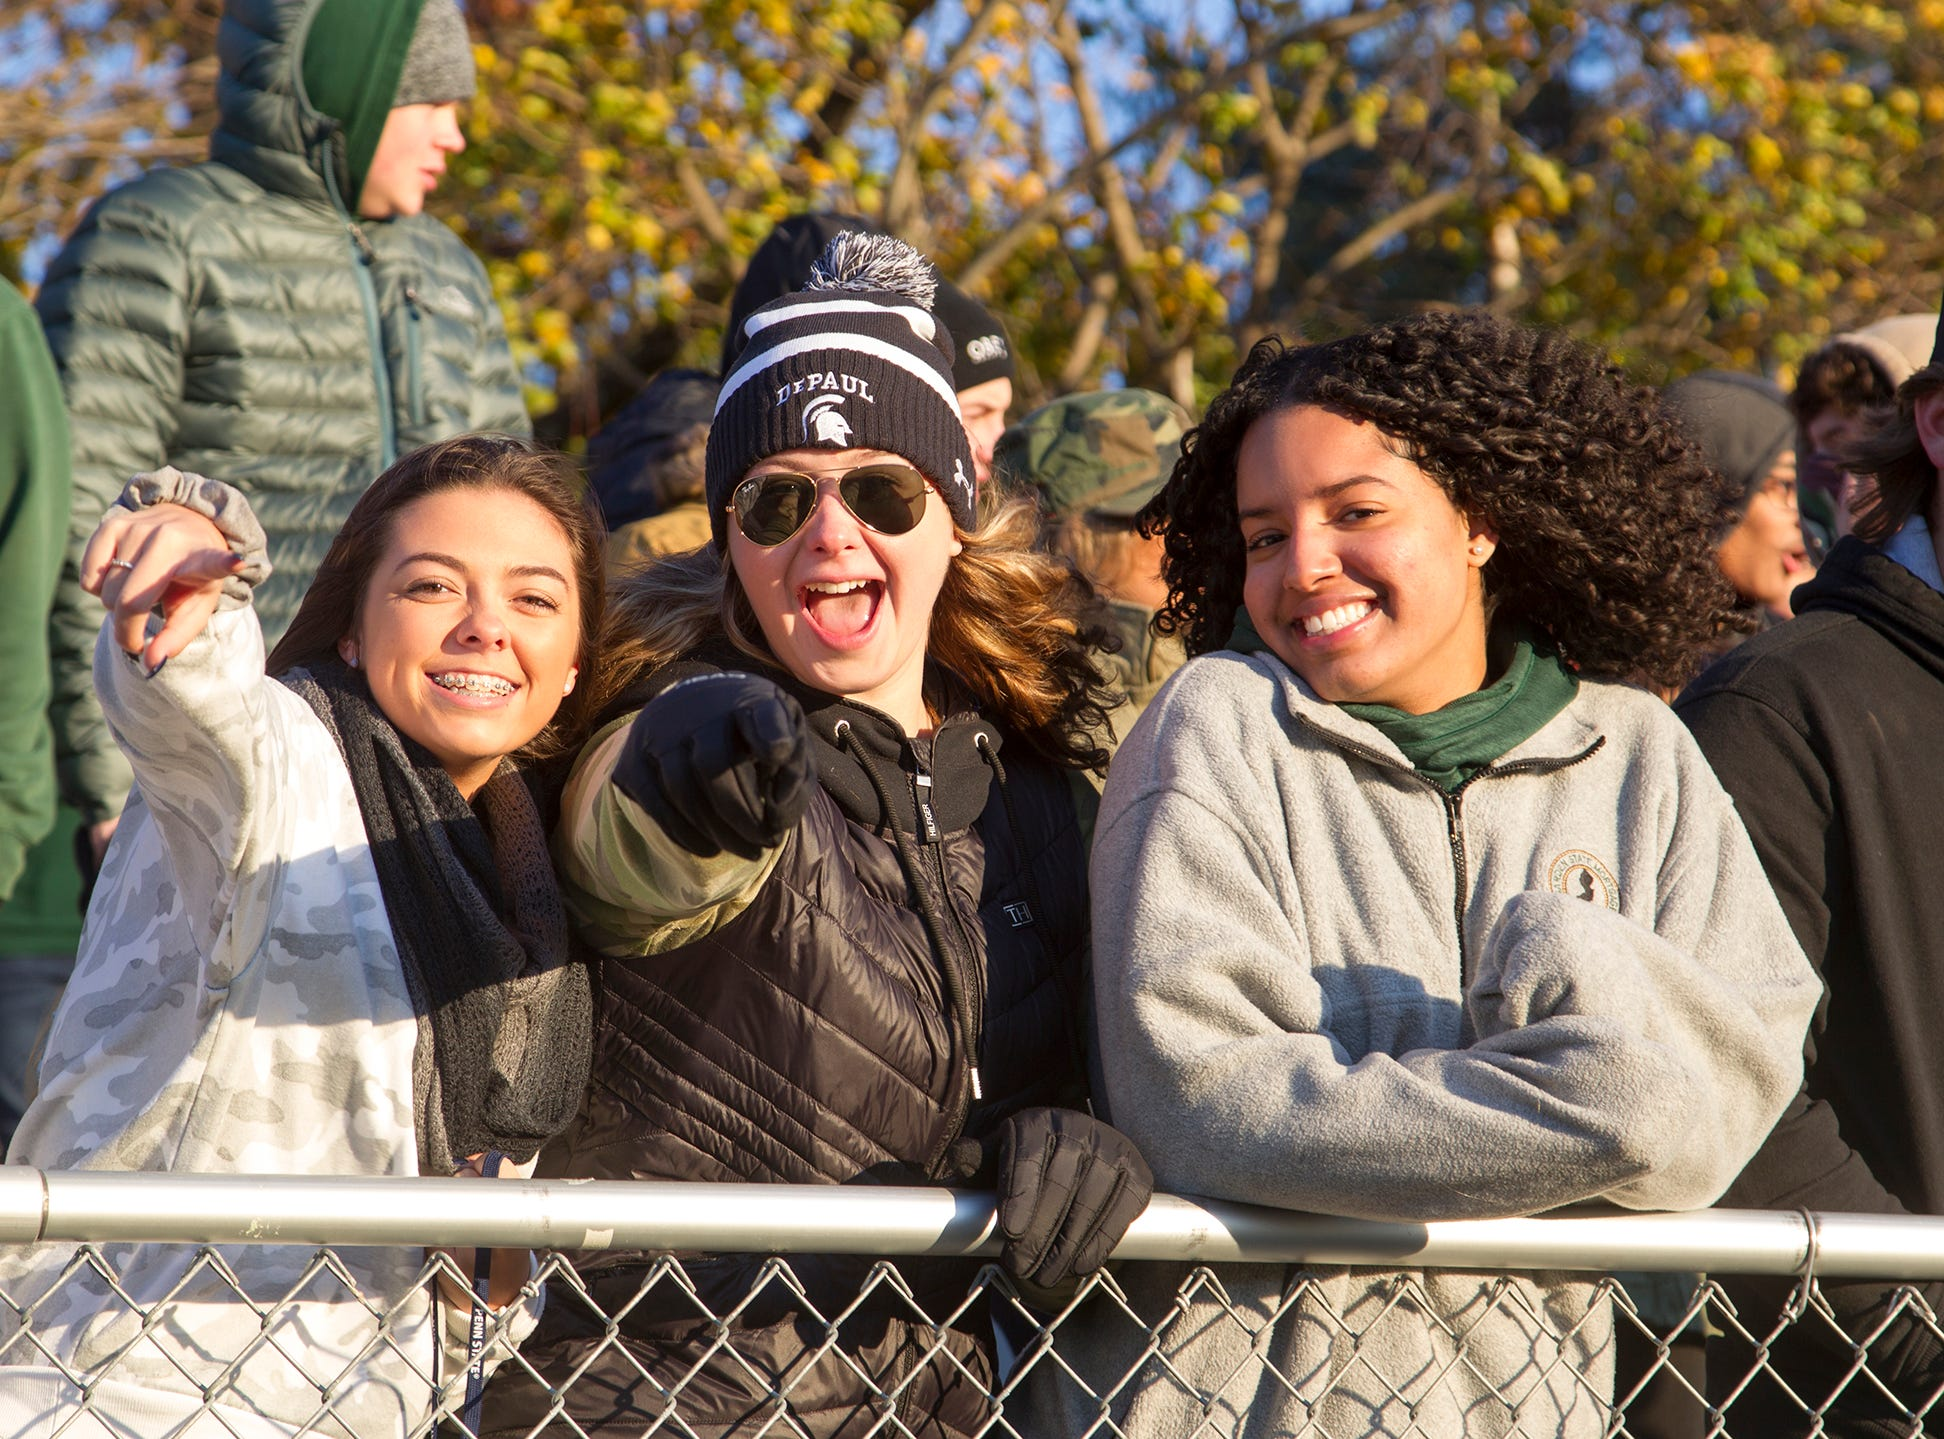 The crowd at the Mater Dei versus DePaul Catholic high school playoff football game. Mater Dei versus DePaul Catholic high school, 28-23. 11/10/2018